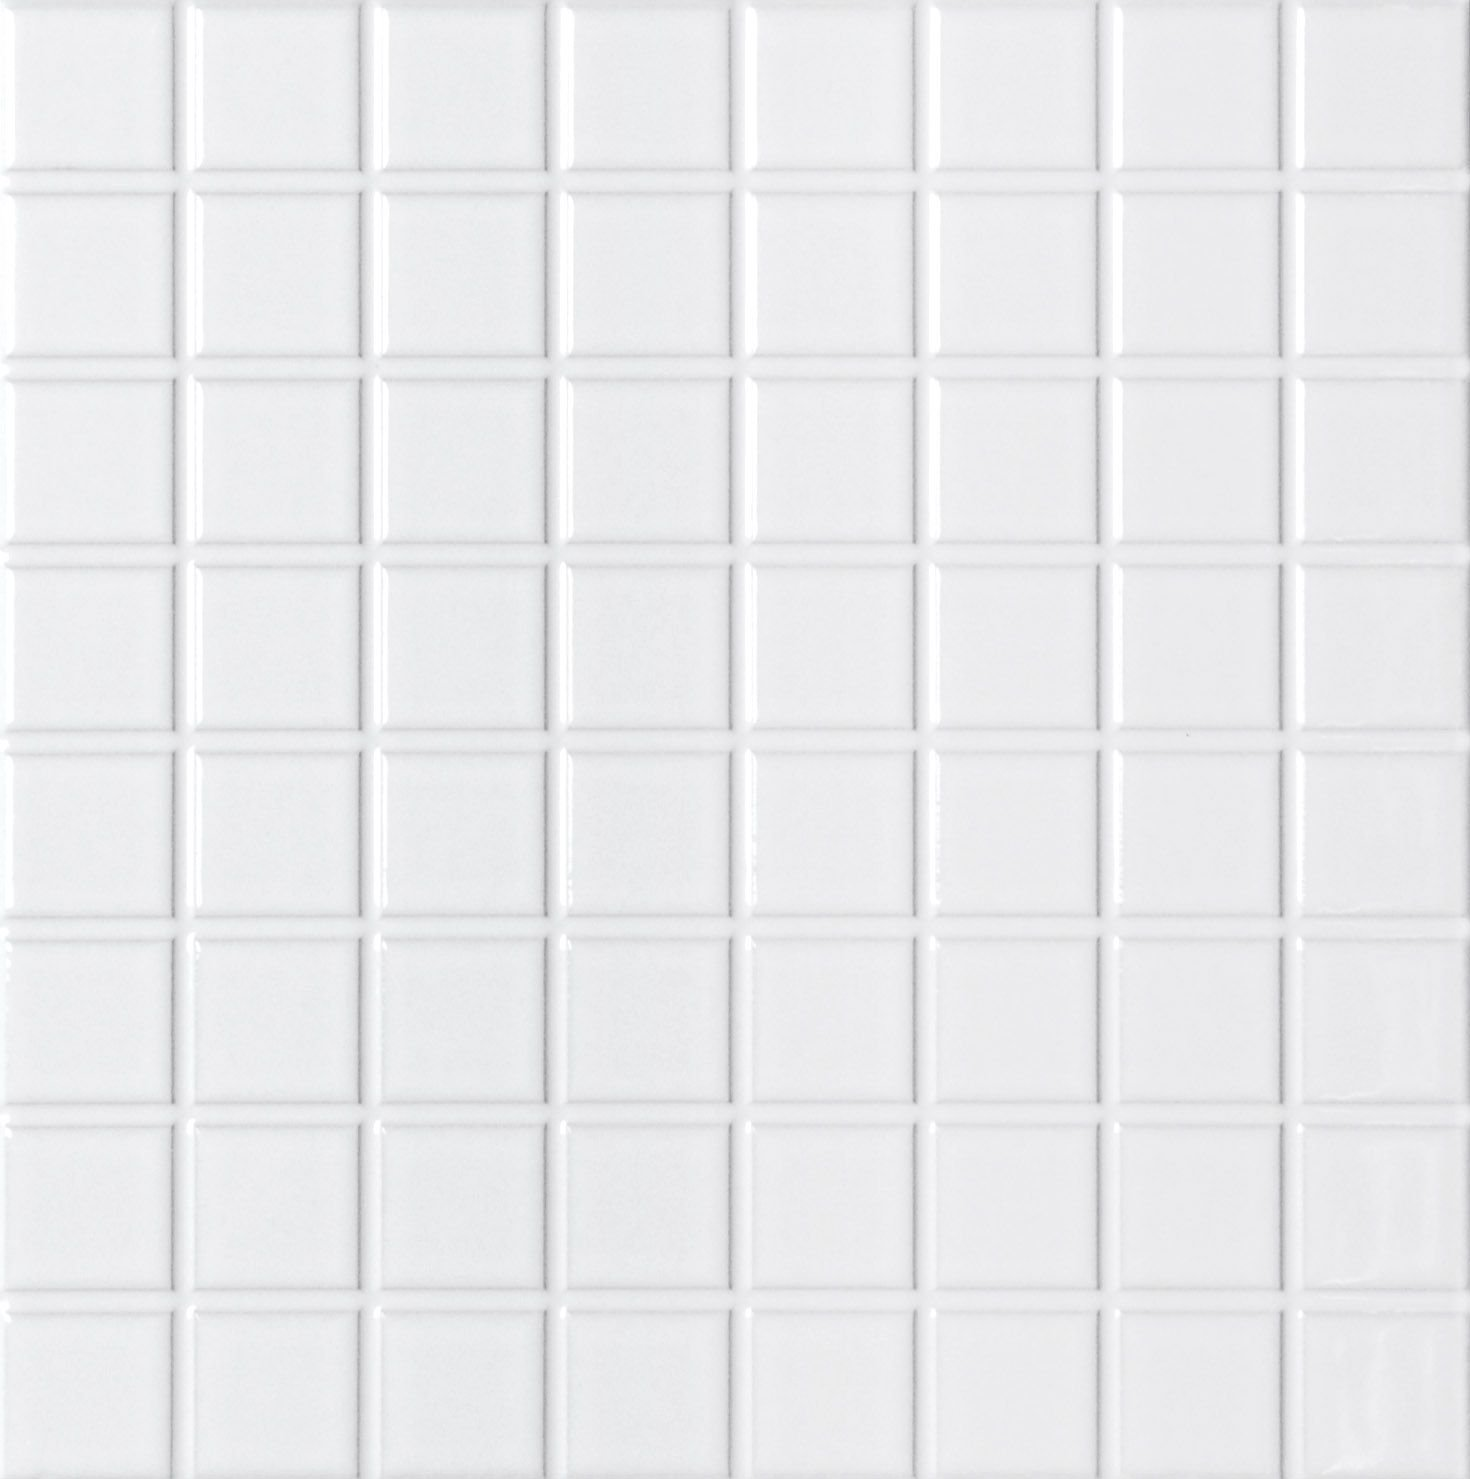 Carrelage mural blanc 15x15 28 images carrelage de for Carrelage mural blanc 20x20